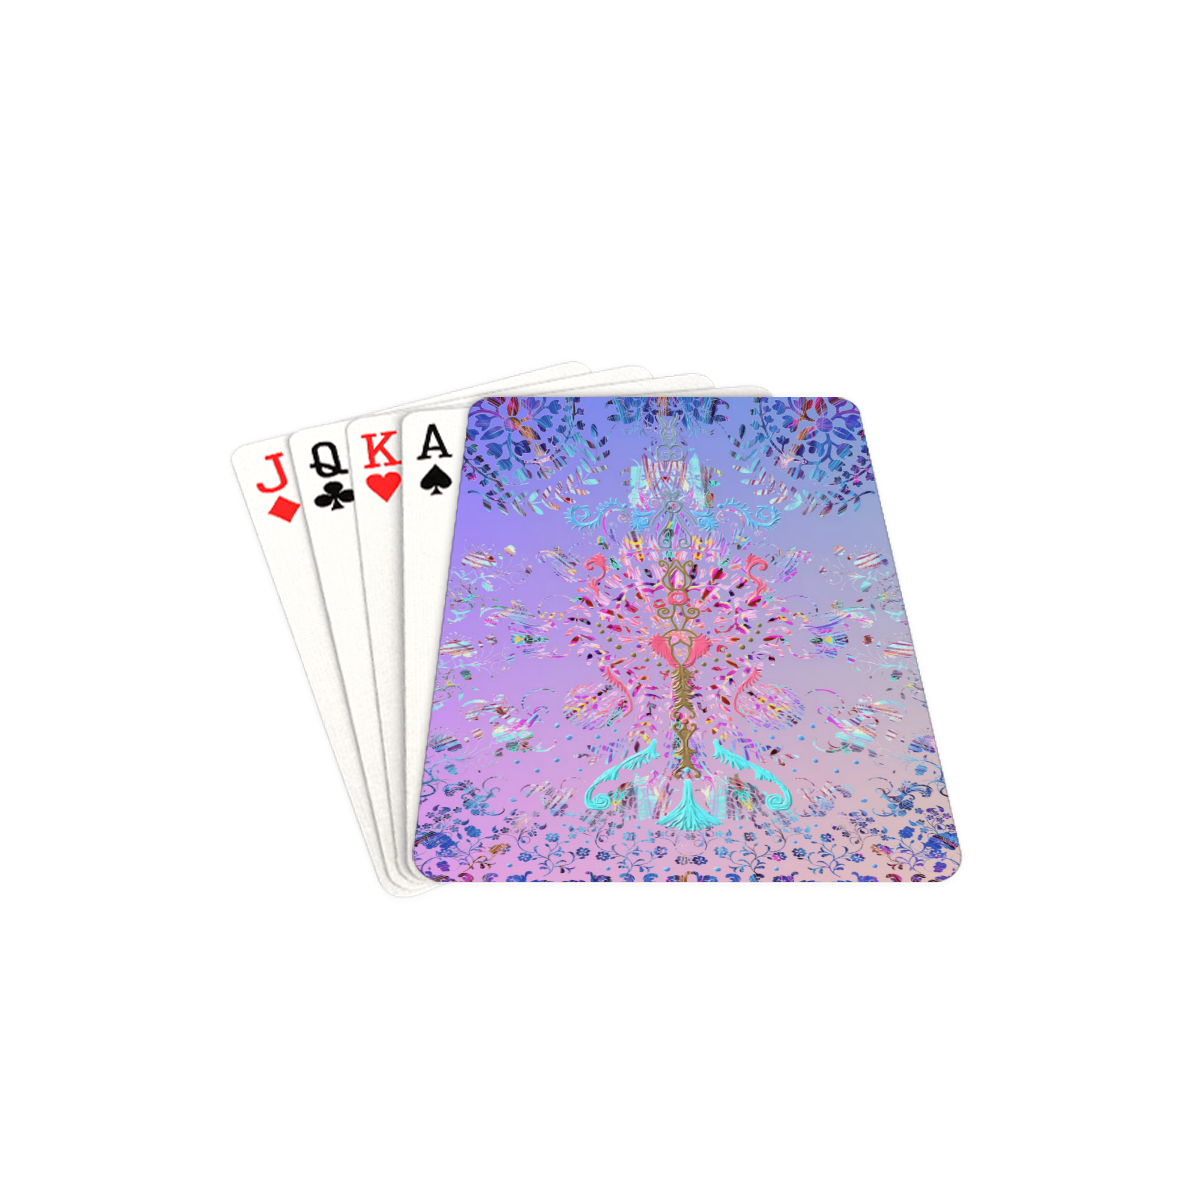 "FRESCA 7 Playing Cards 2.5""x3.5"""